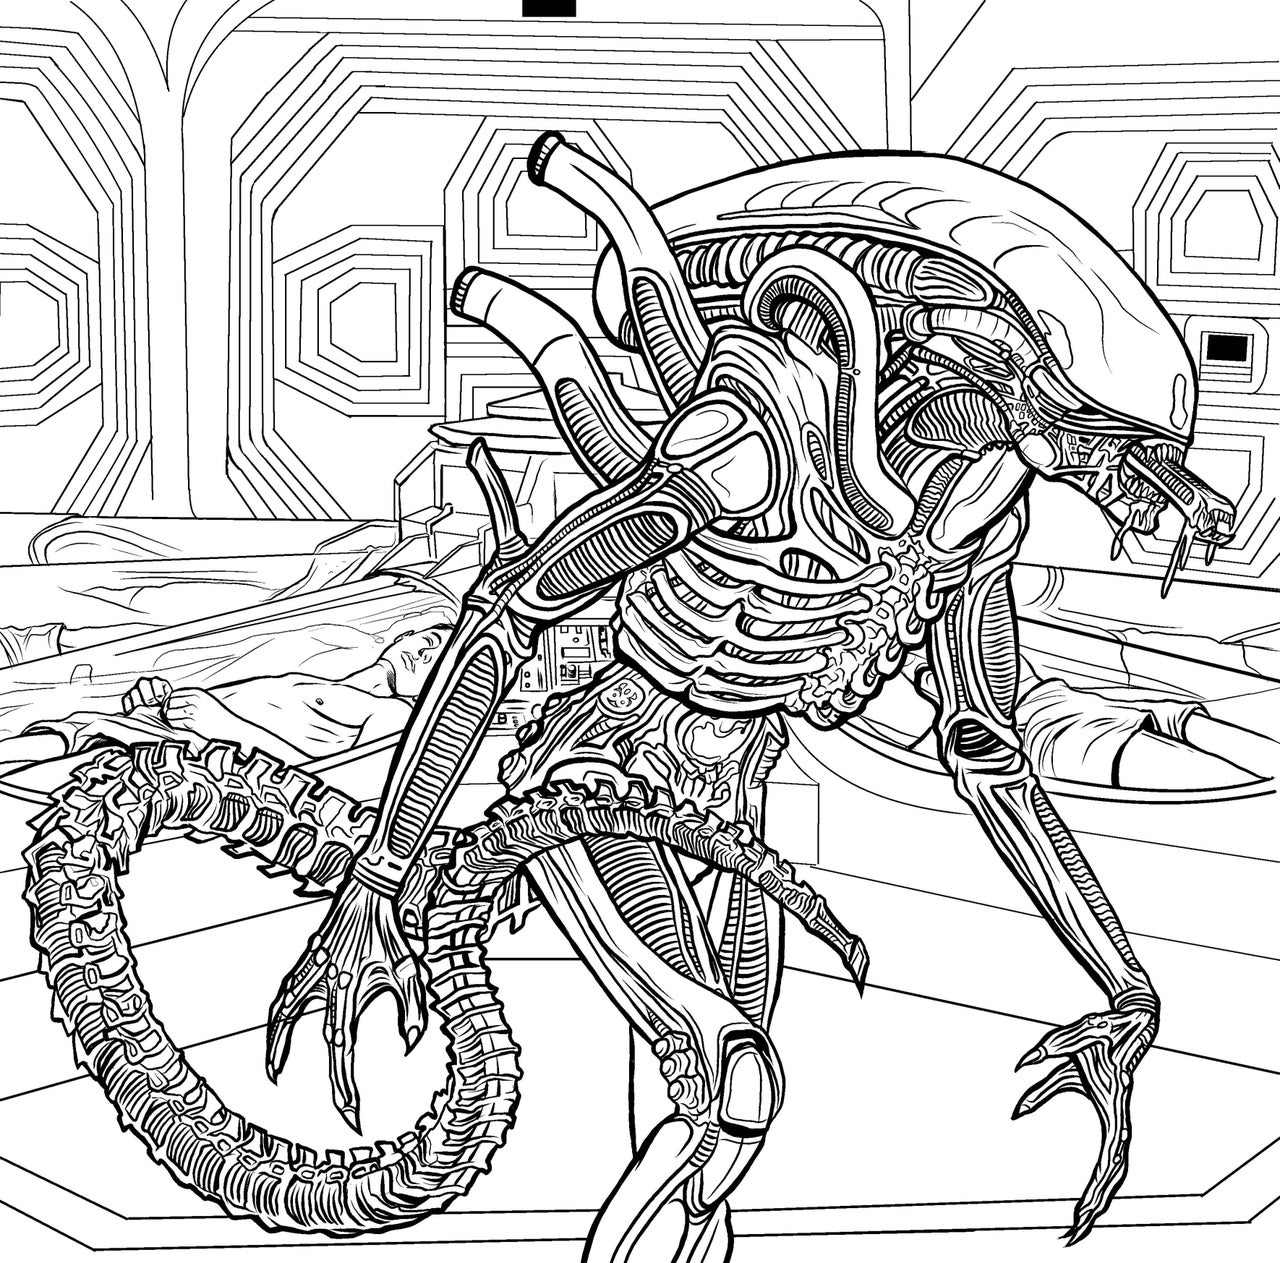 printable alien pictures top 10 free printable funny alien coloring pages online printable alien pictures